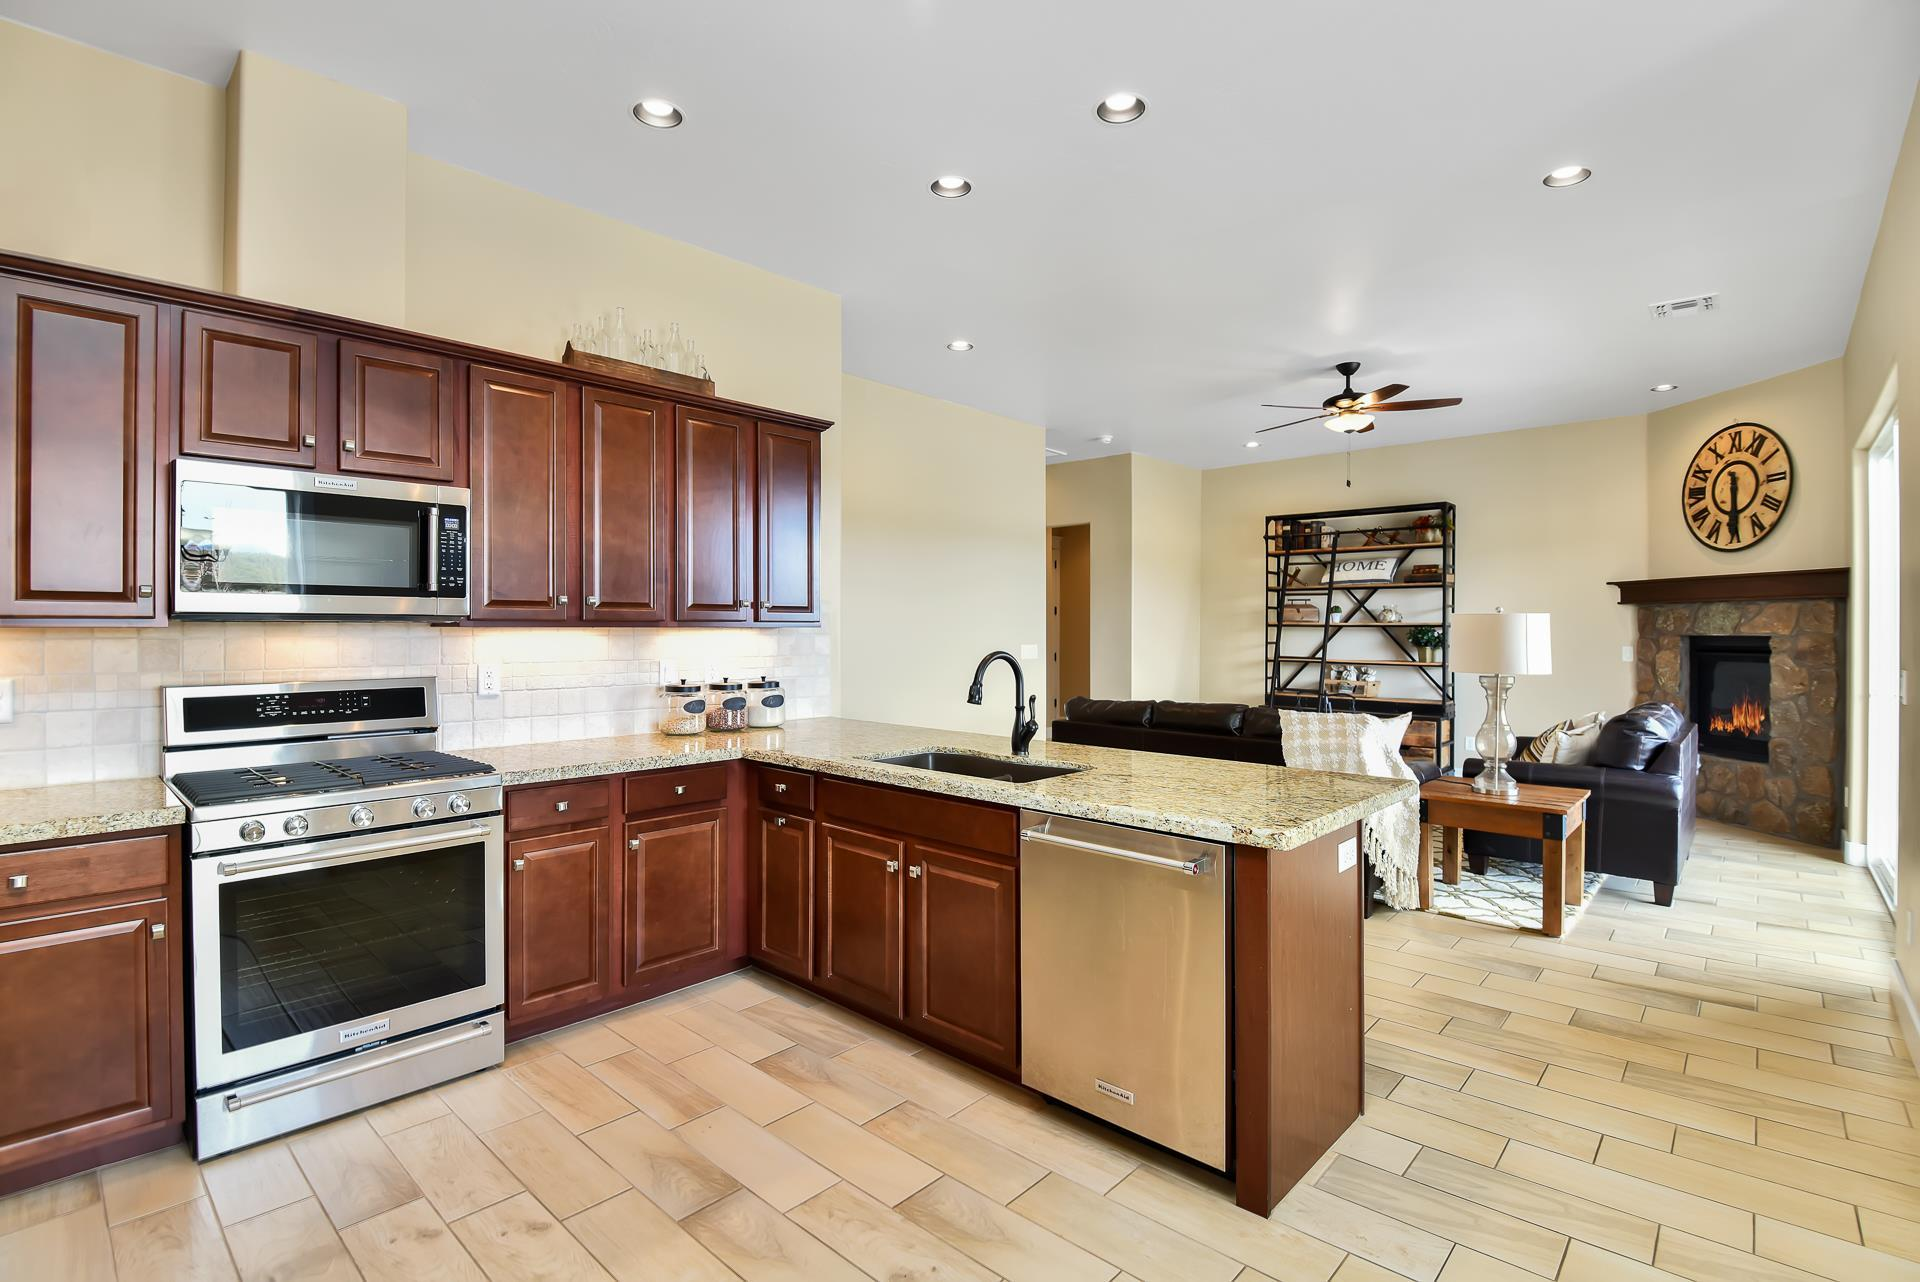 Kitchen featured in the Flagstaff Meadows Plan 1896 By Capstone Homes in Flagstaff, AZ